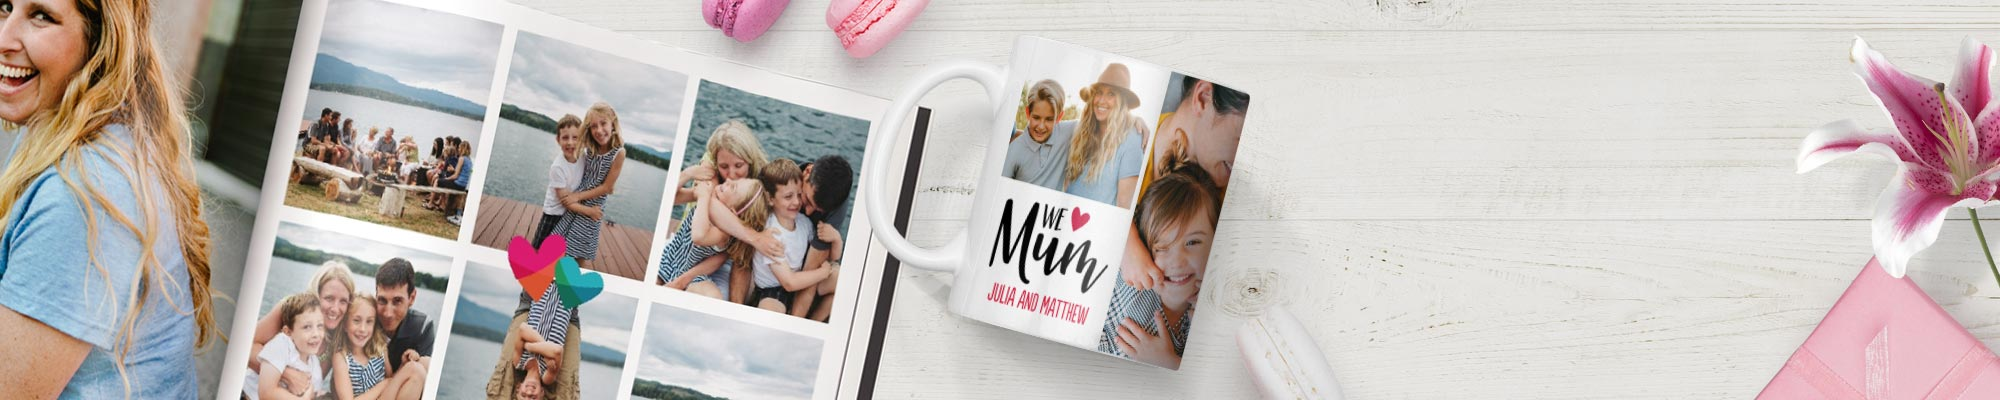 Gift Ideas for Mum